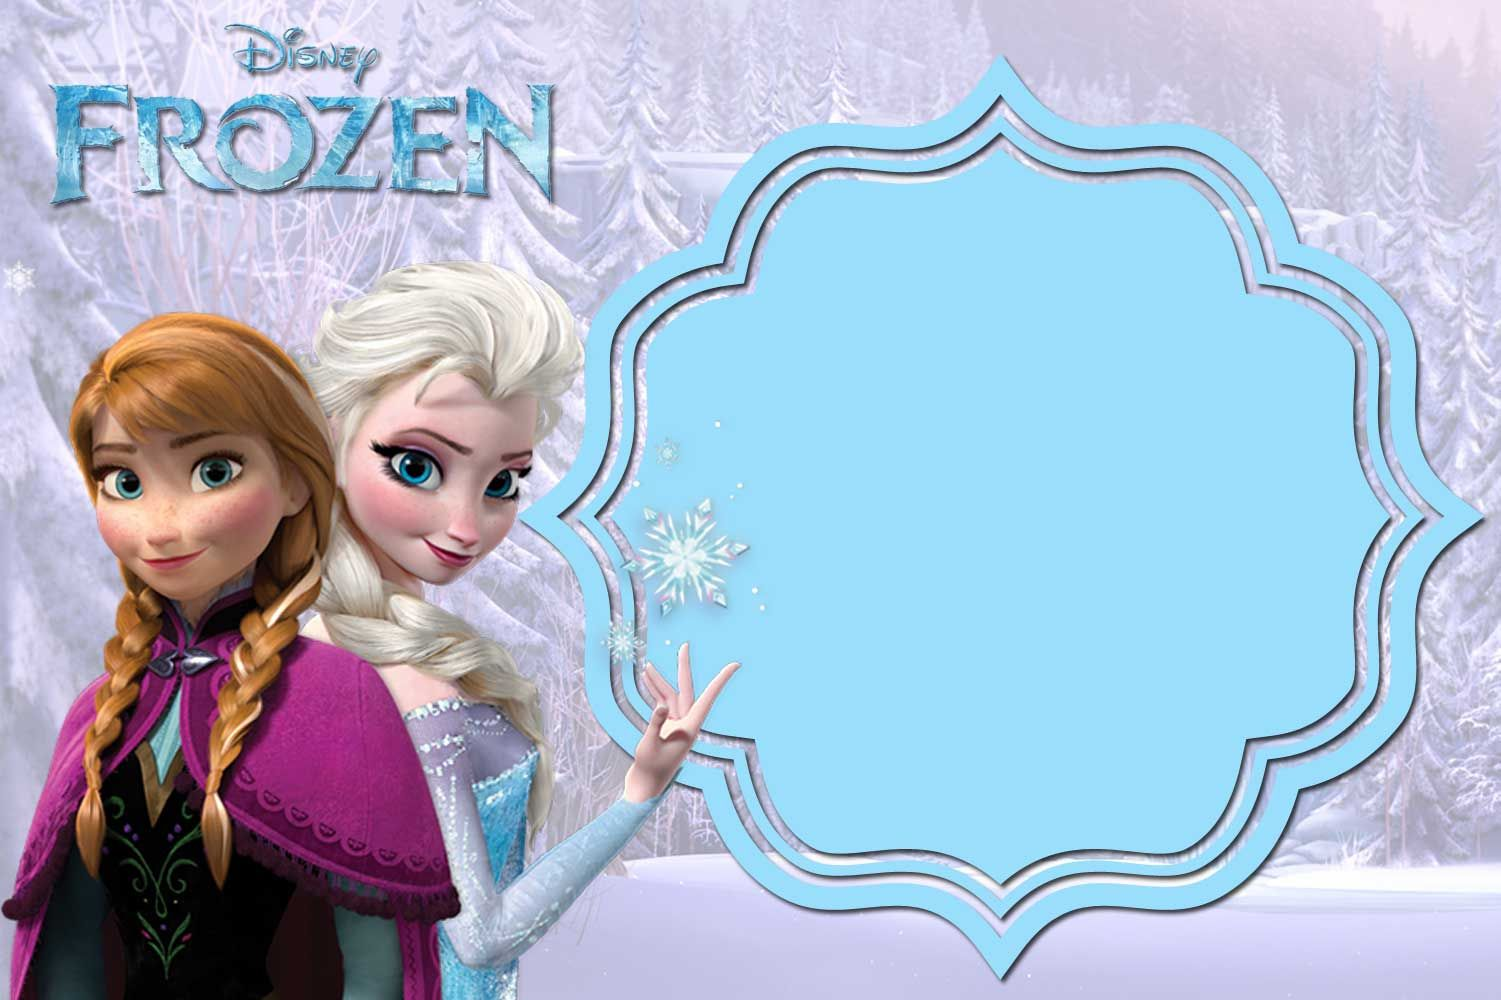 Free Printable Frozen Anna And Elsa Invitation Templates Drevio In 2020 Frozen Birthday Invitations Frozen Invitations Frozen Birthday Party Invites